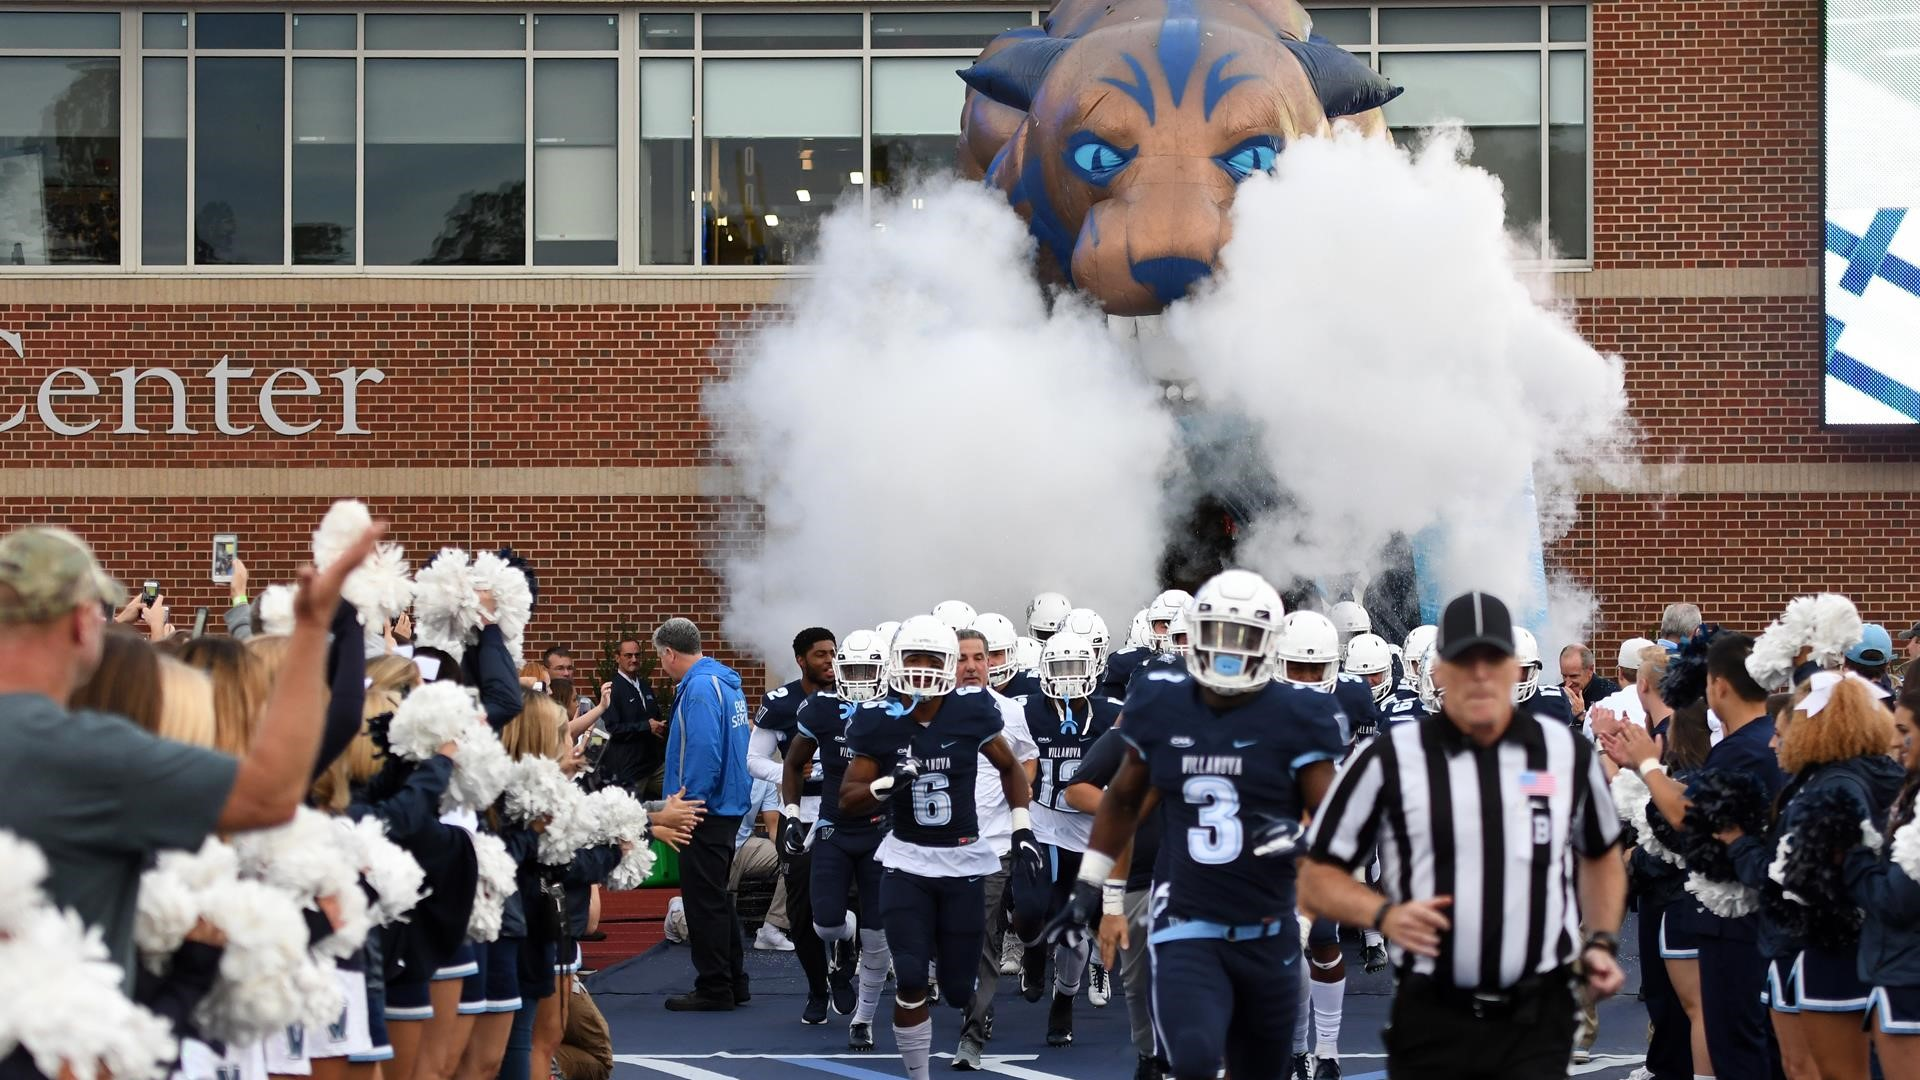 Villanova Calendar 2019 Villanova Announces 2019 Football Schedule   Villanova University